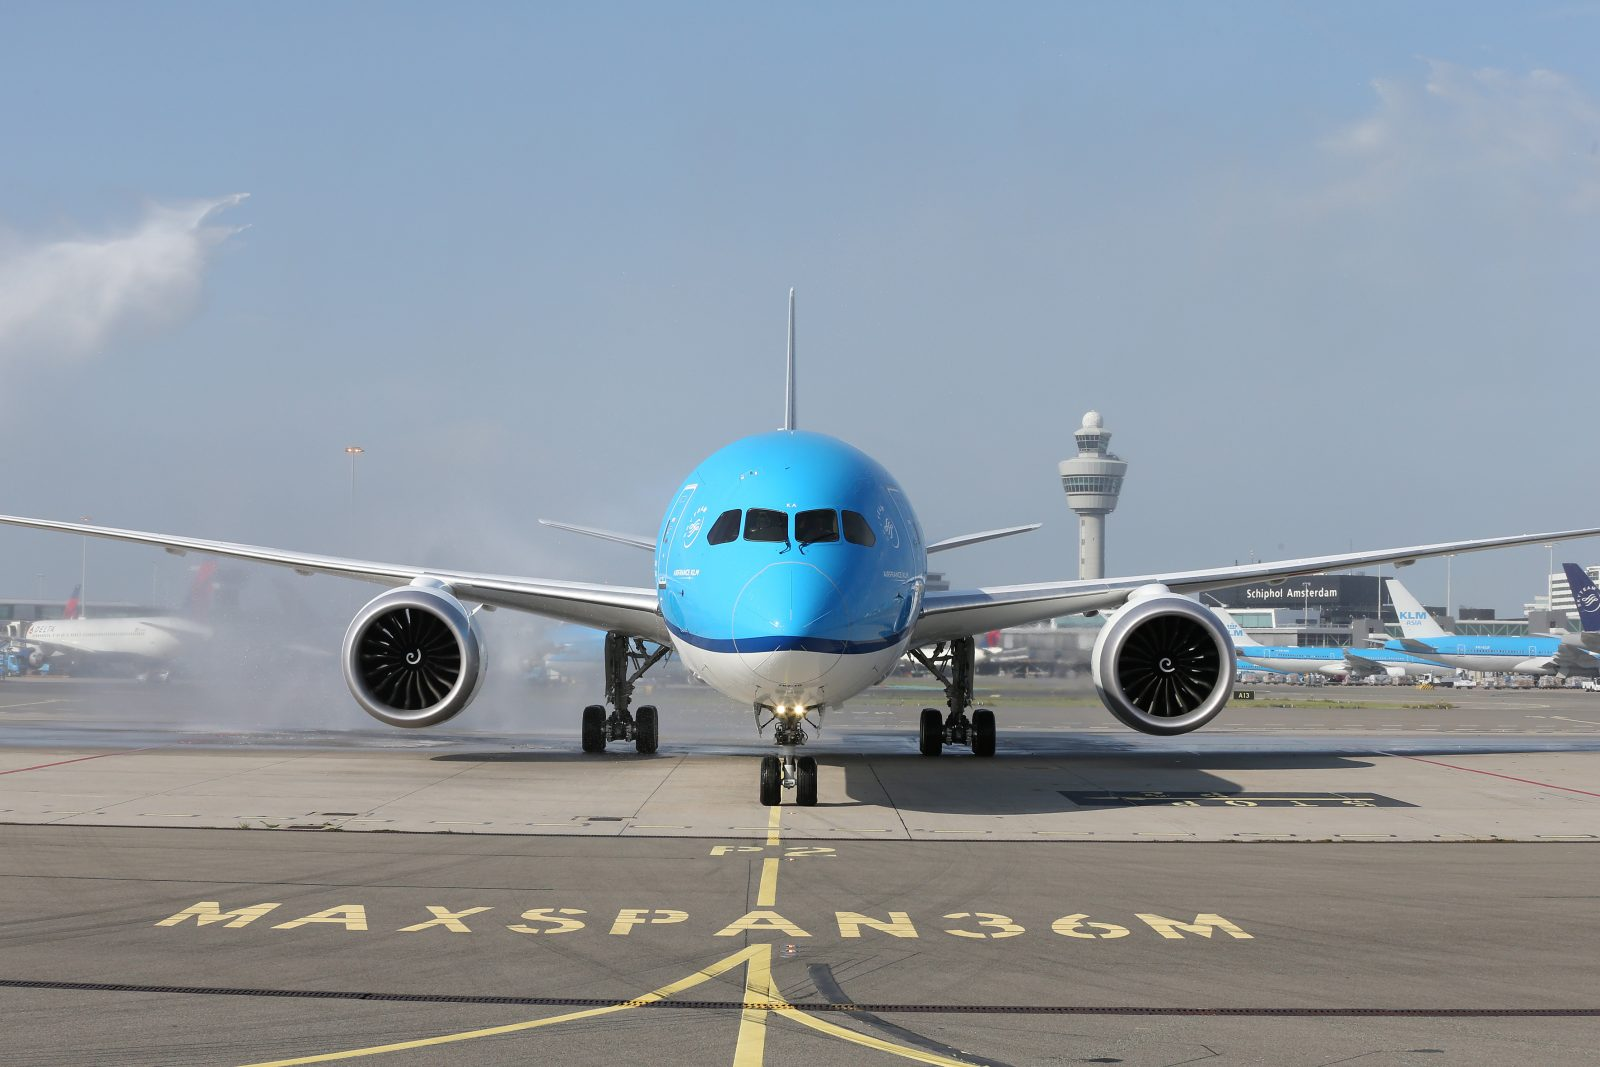 Dutch Airline KLM Causes Outrage with Cover Up Breastfeeding Policy